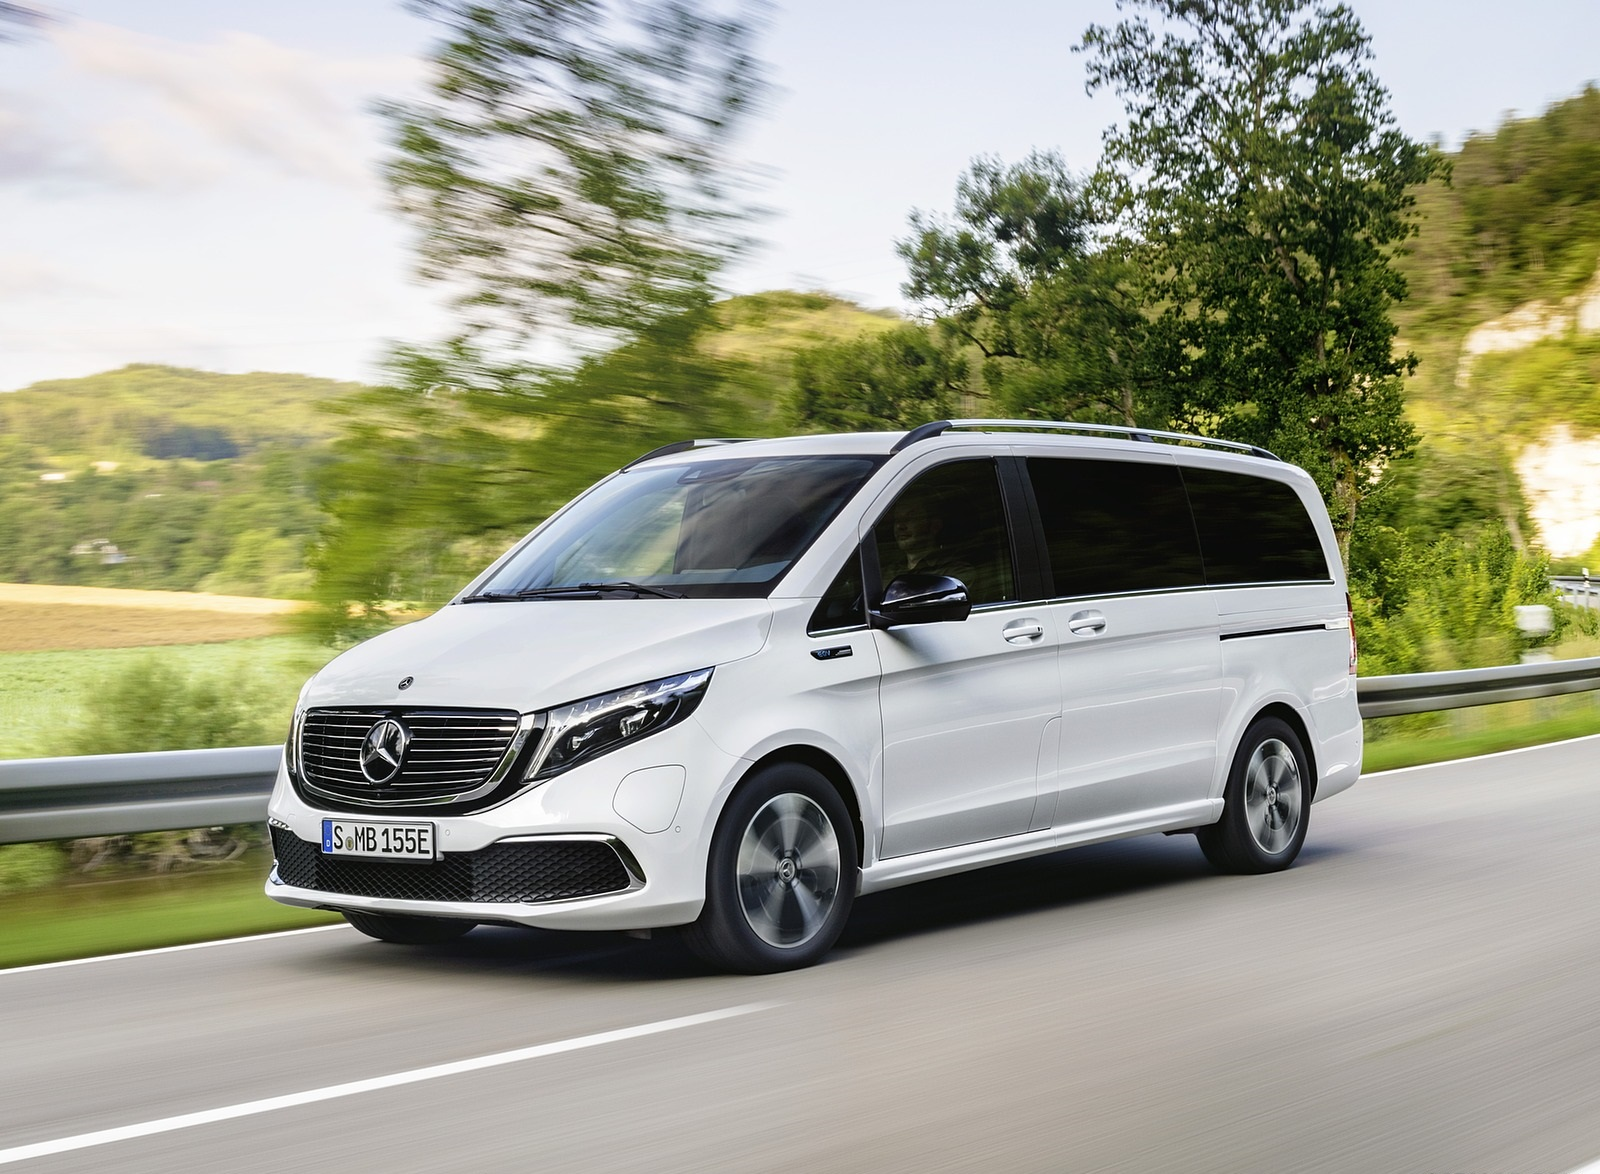 2020 Mercedes-Benz EQV 300 (Color: Mountain Crystal White Metallic) Front Three-Quarter Wallpapers (2)